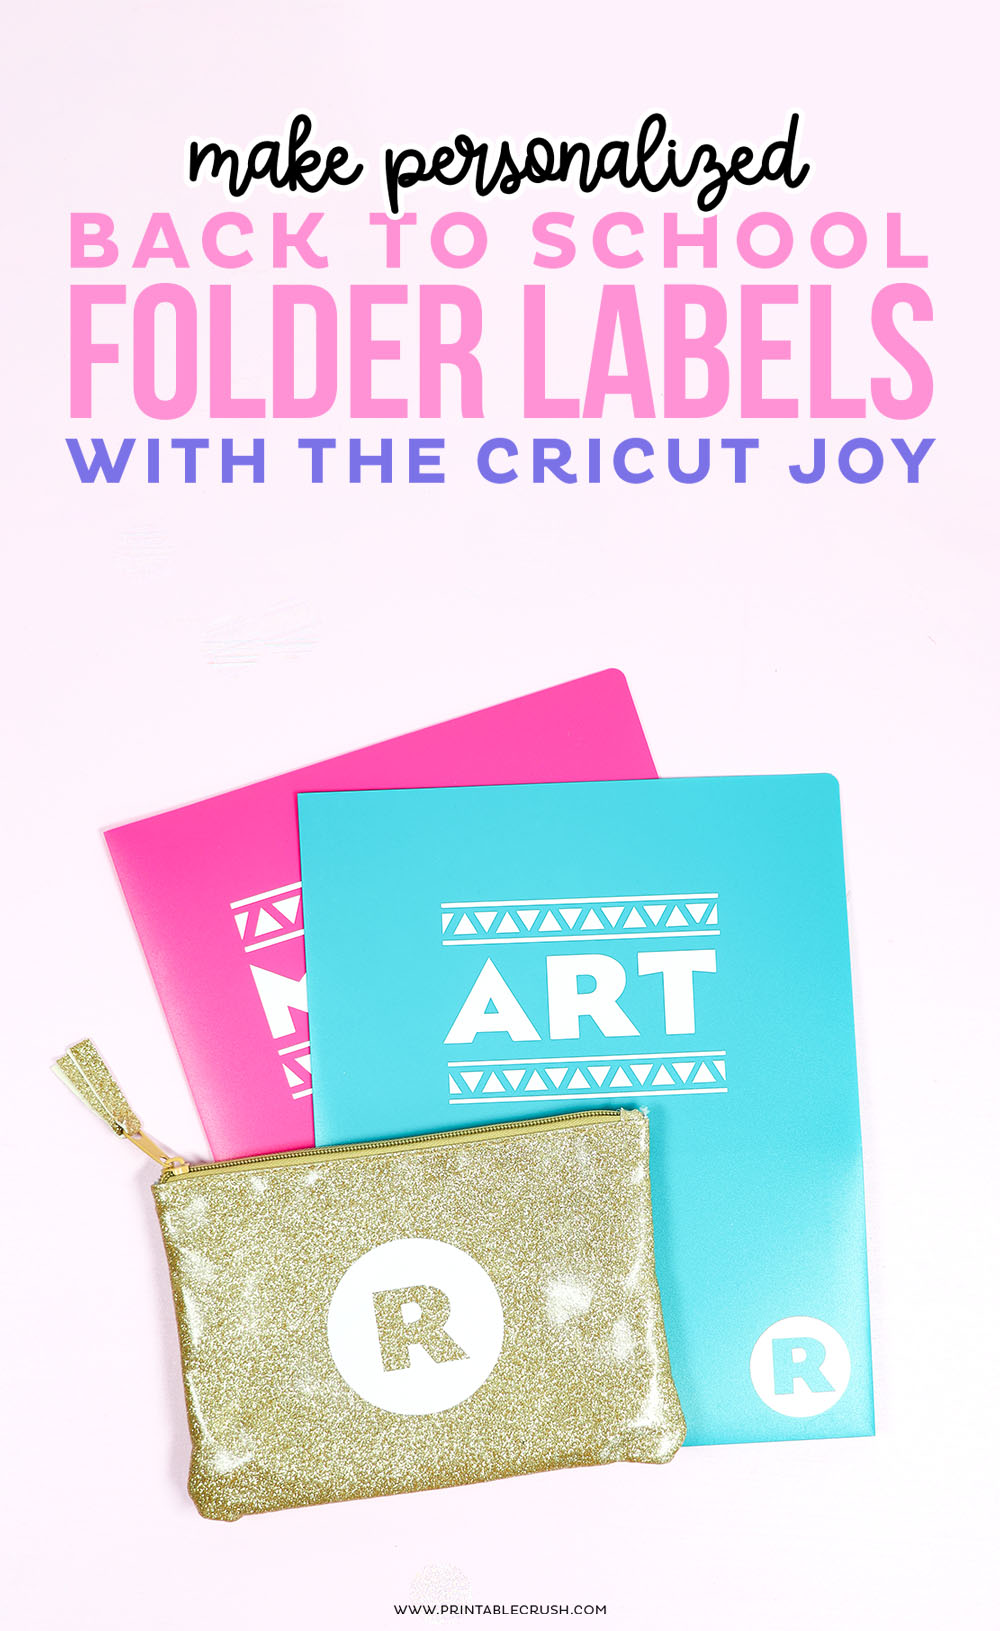 Cricut Joy Back to School Folders DIY - Printable Crush